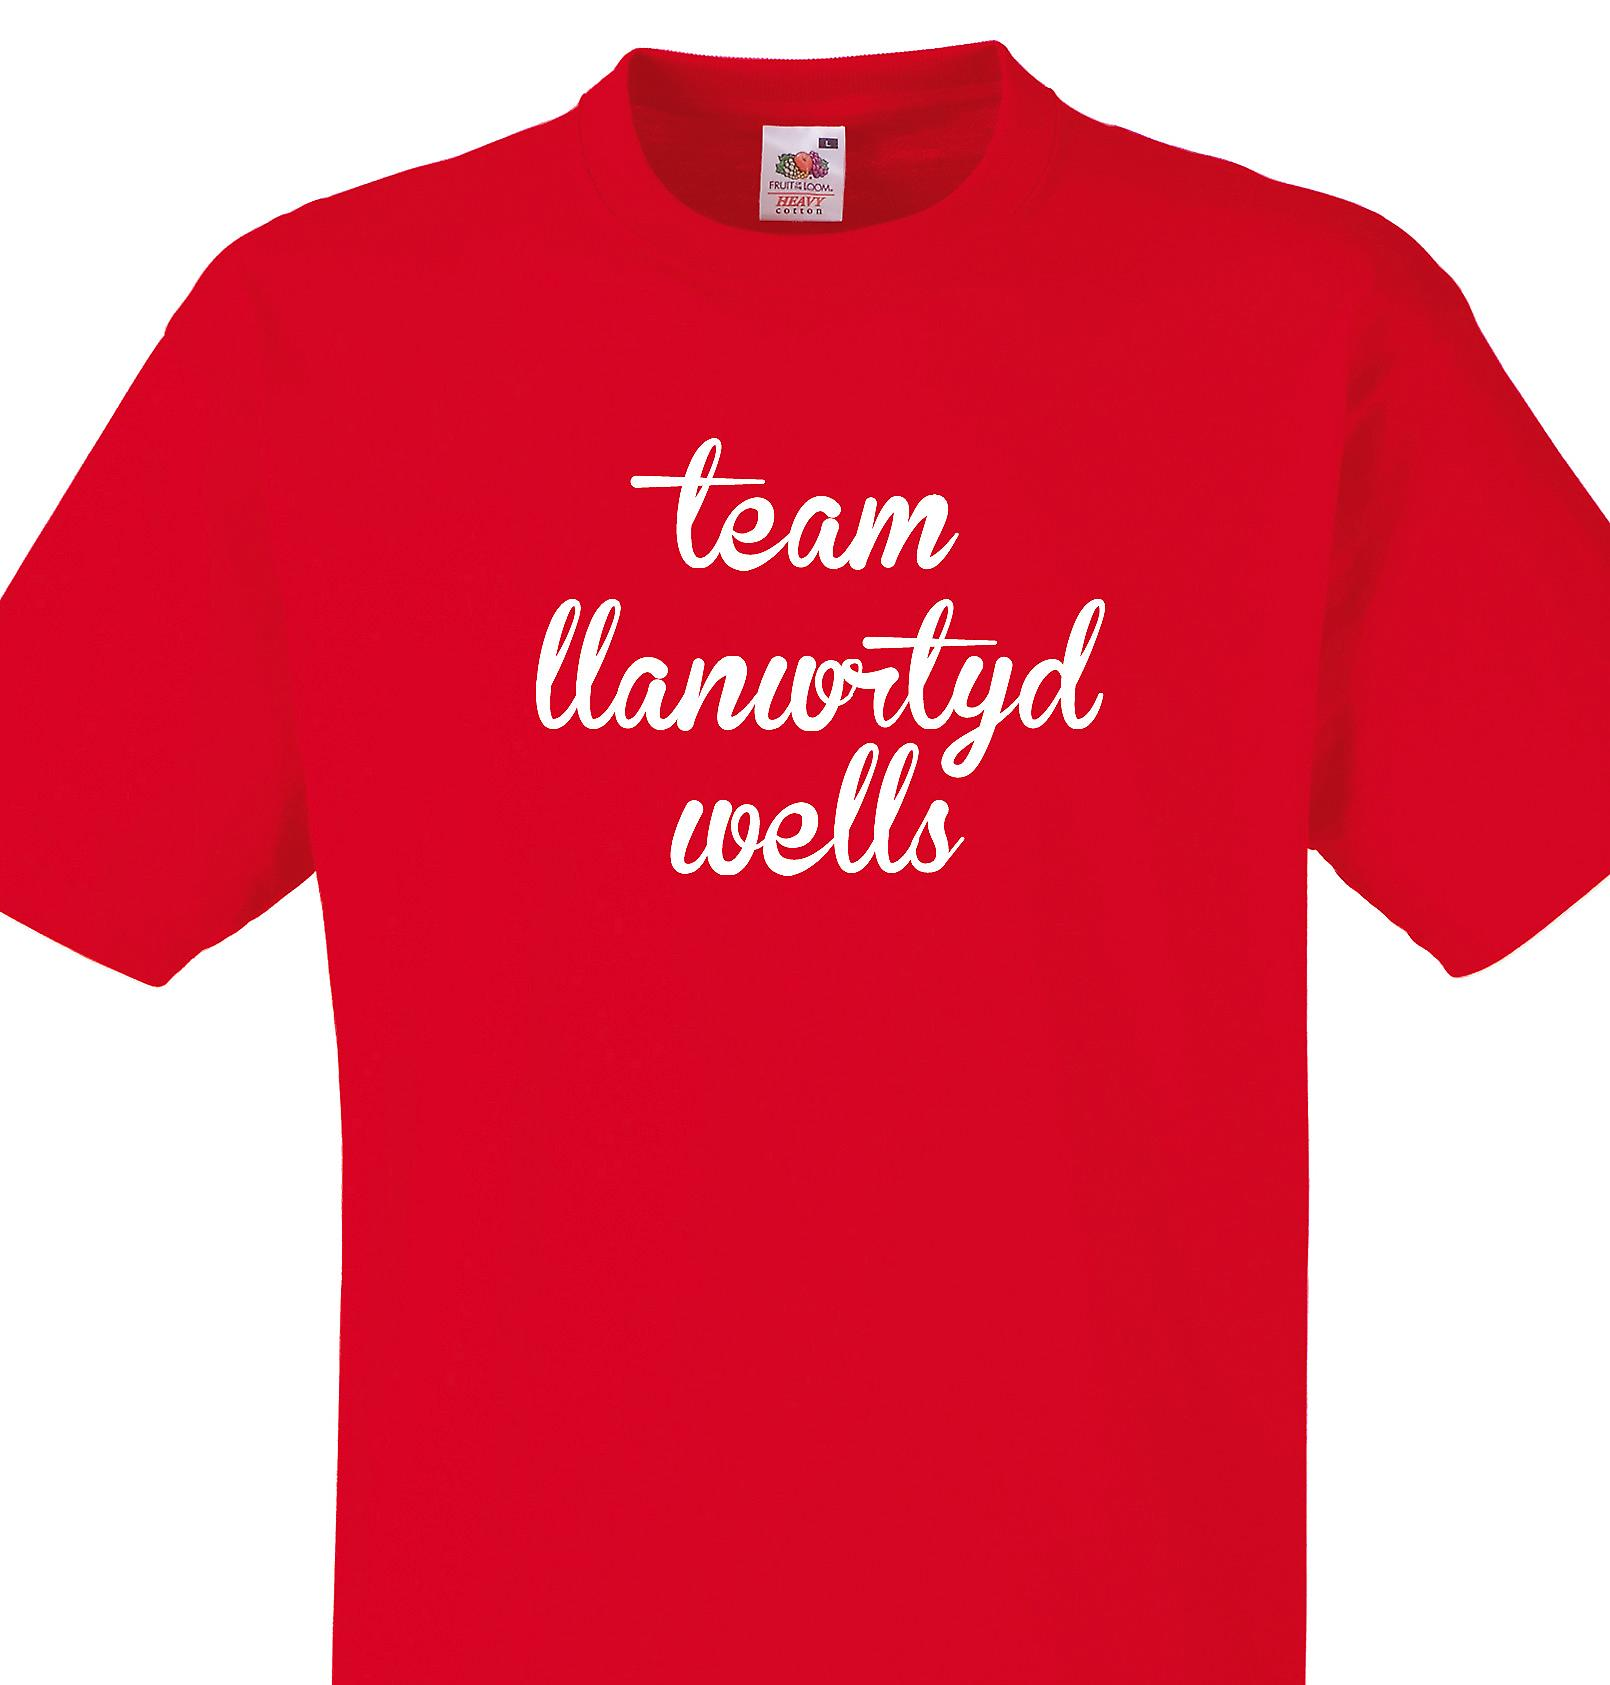 Team Llanwrtyd wells Red T shirt